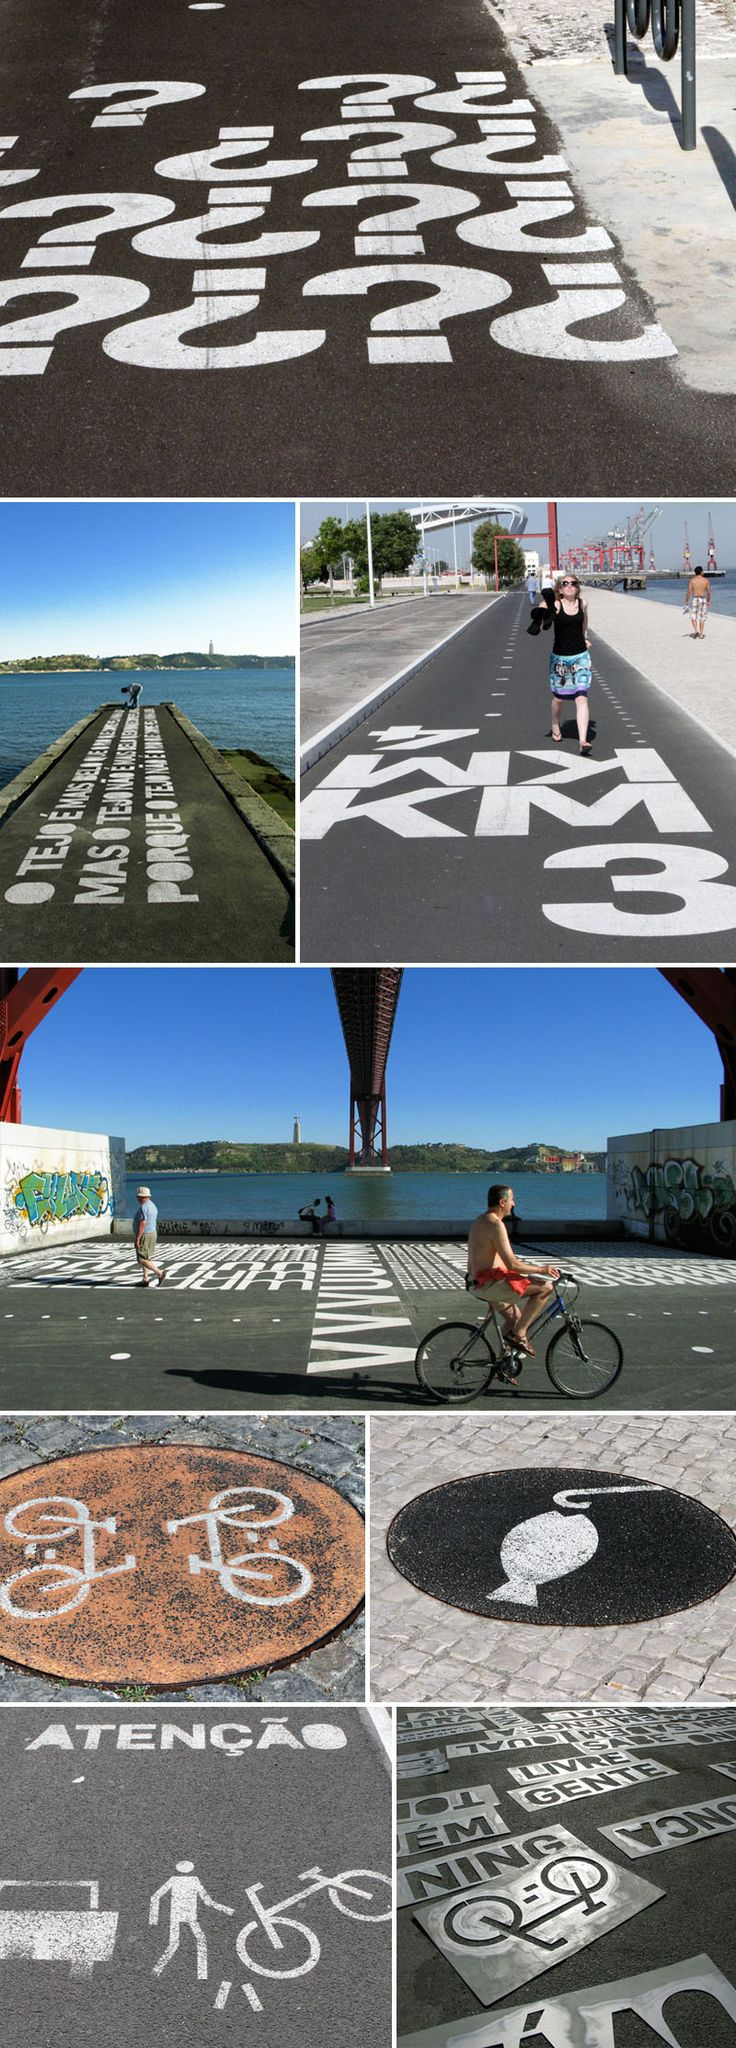 by P-06 Atelier. Everything is improved with a little typography. Bicycle paths included. The Bikeway Belém in Lisbon is a prime example. The 7,362-meter bike route along the river Tagus has bold white wayfinding text and symbols painted directly on the pavement which, apart from its practical purposes such as providing direction and measuring distances, is also fun and engaging.